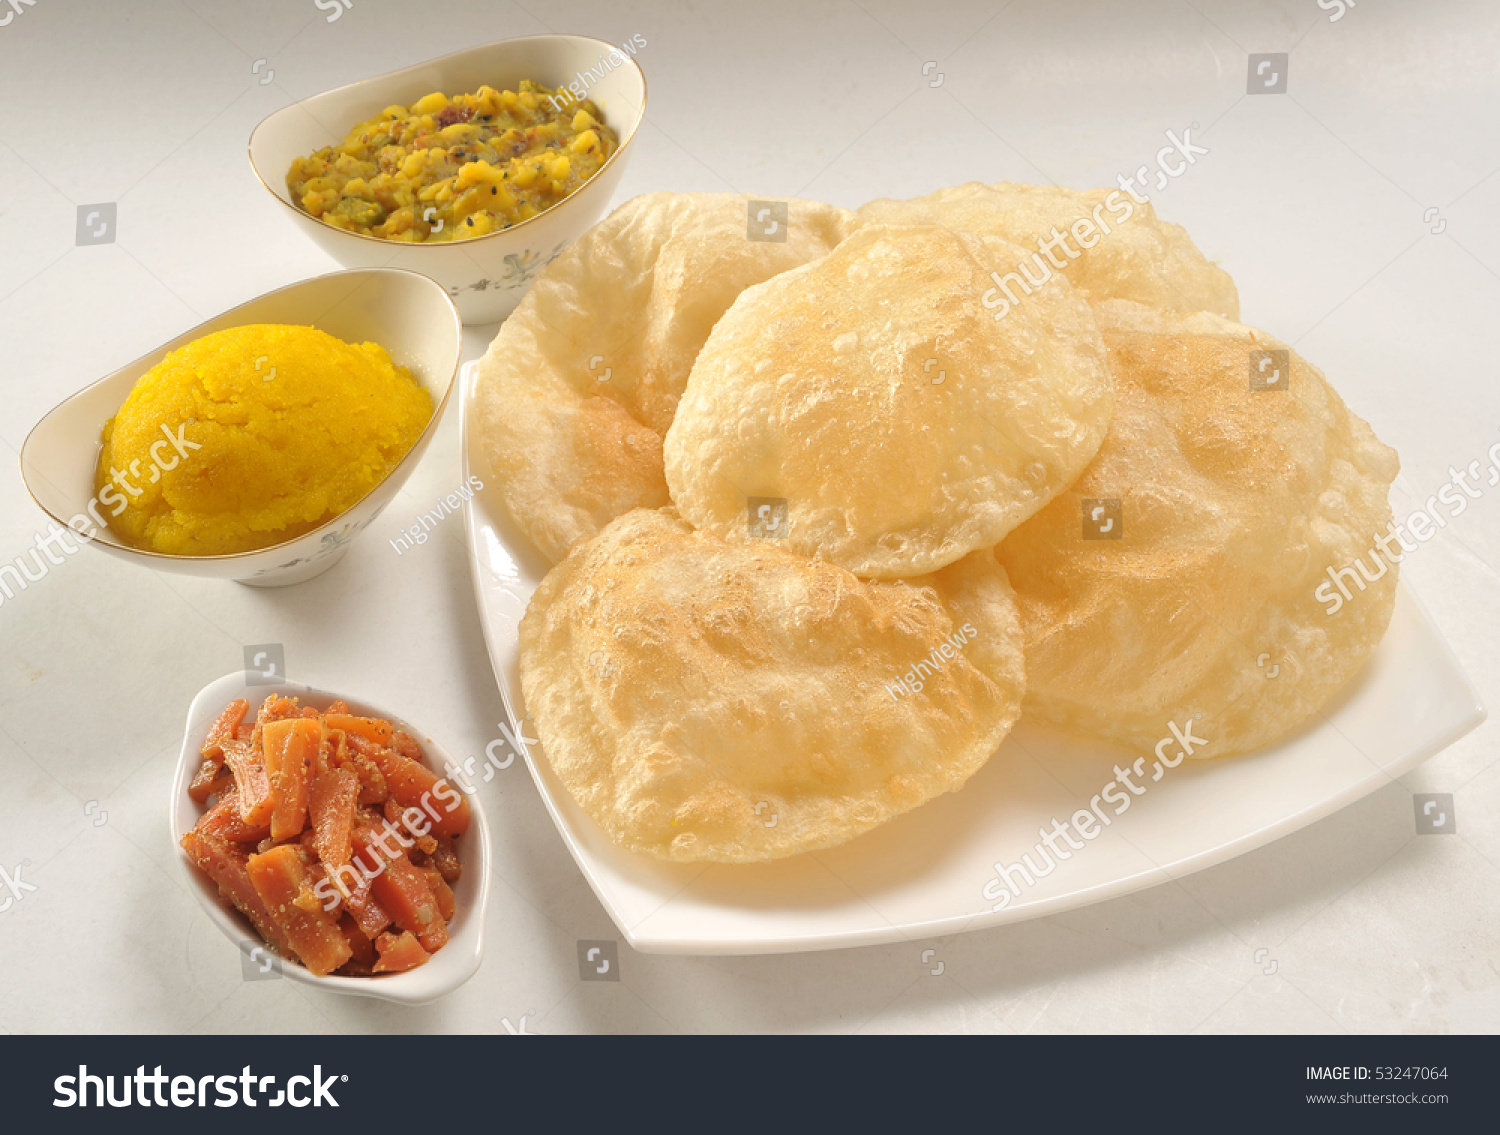 how to make halwa puri